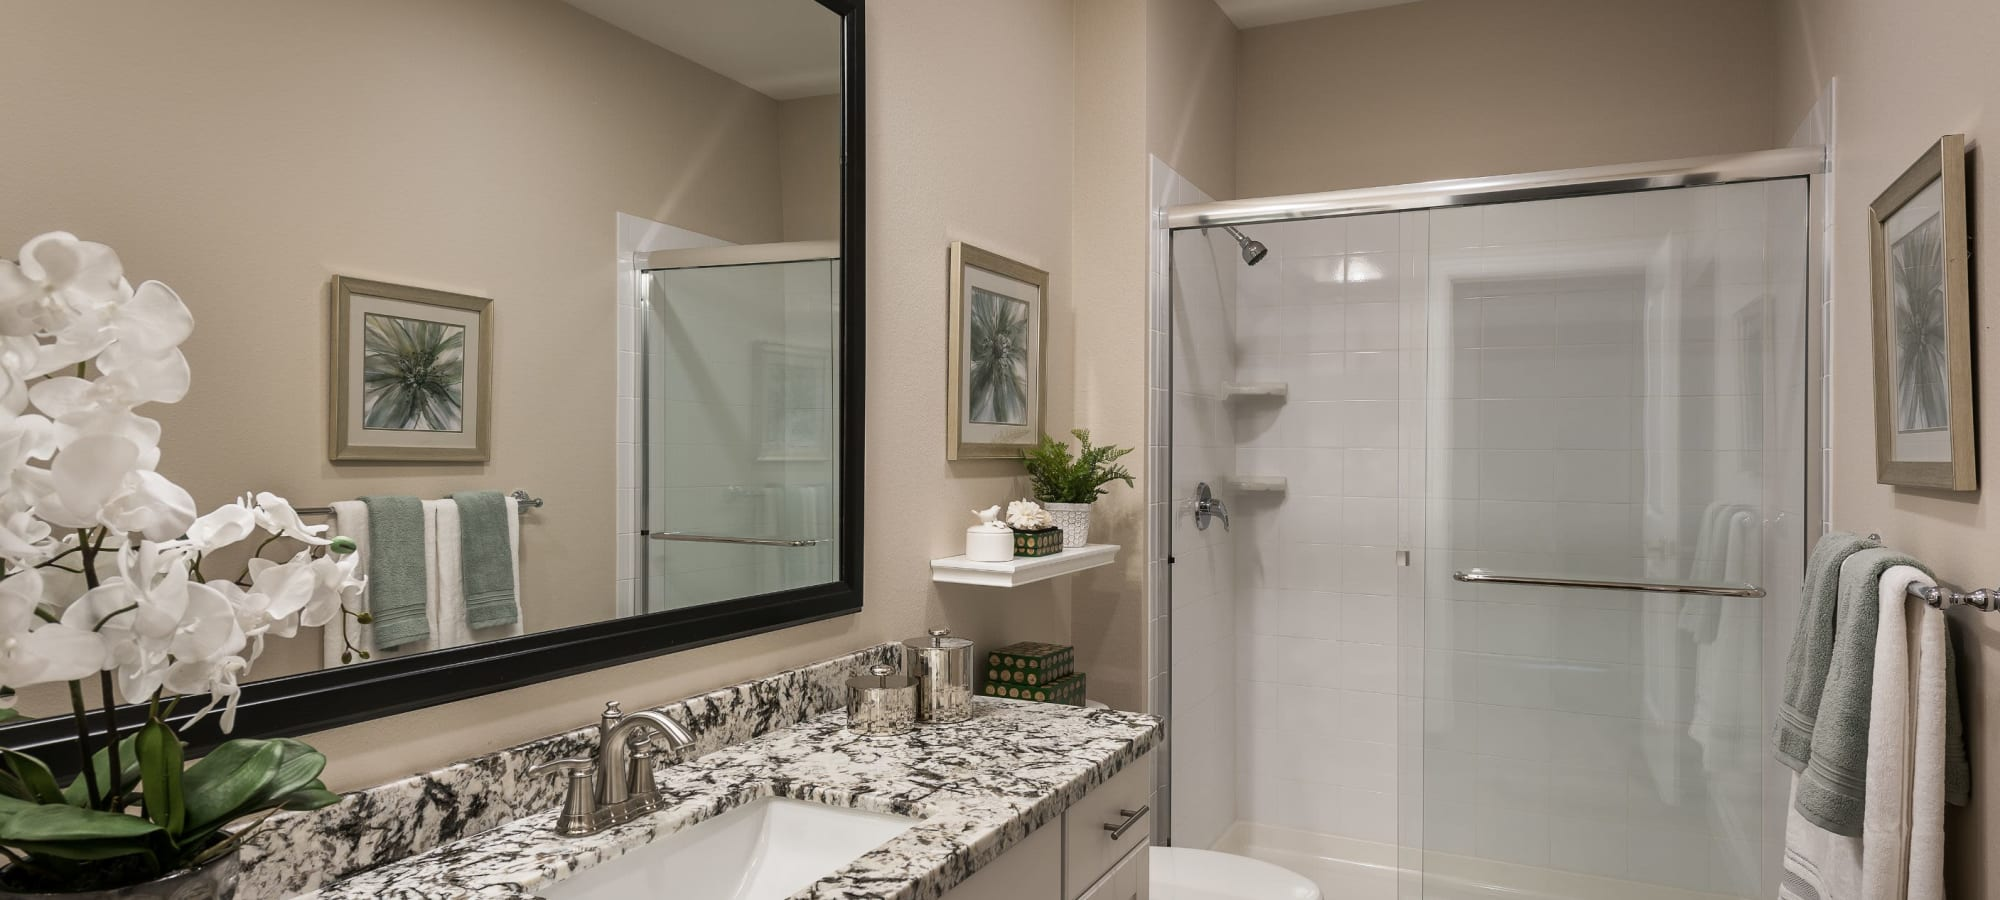 Bathroom with a glass door shower at San Artes in Scottsdale, Arizona